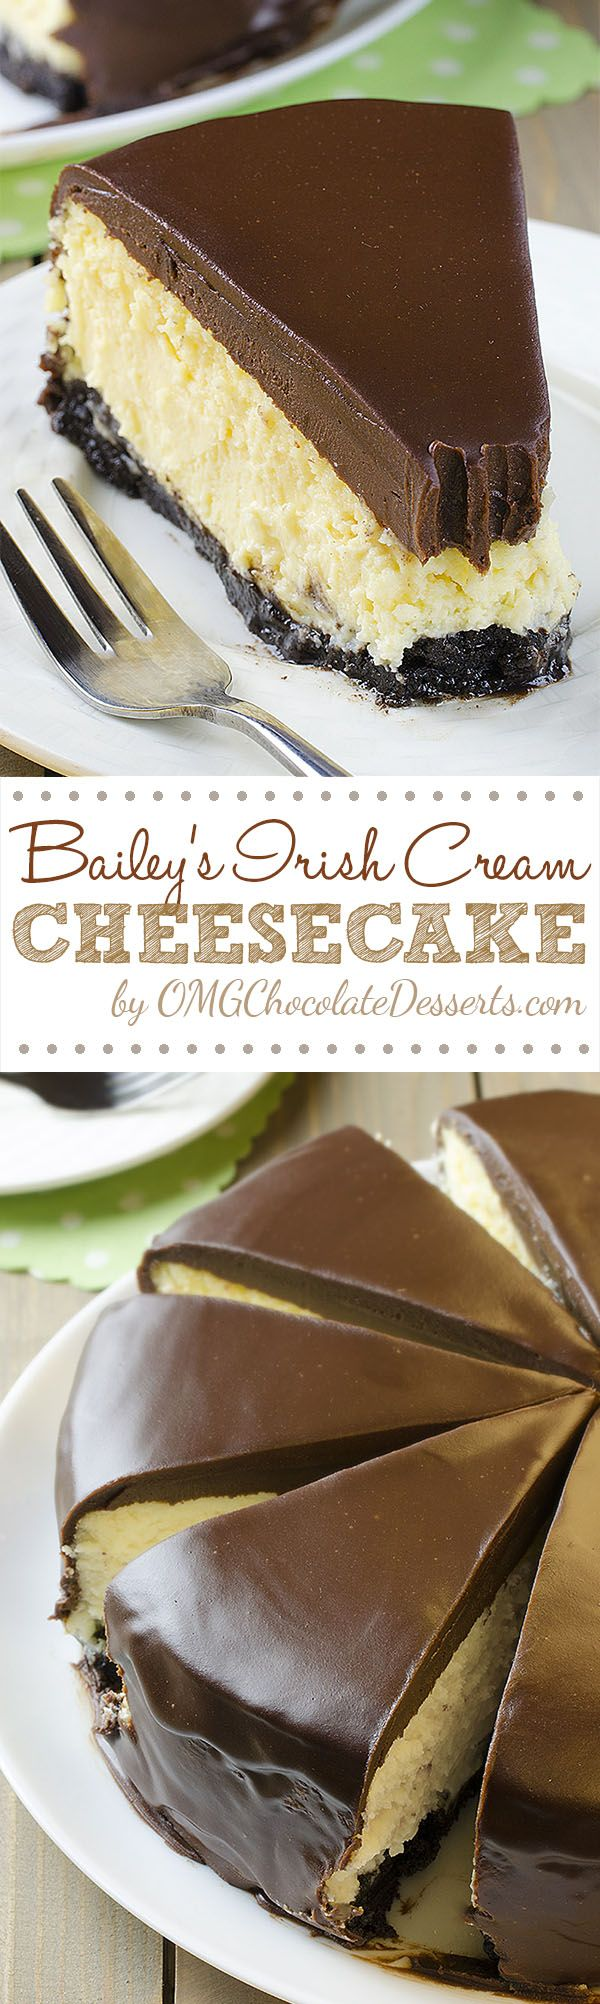 Boozy, sinful and decadent Irish Cream Cheesecake loaded with Bailey's Irish Cream.